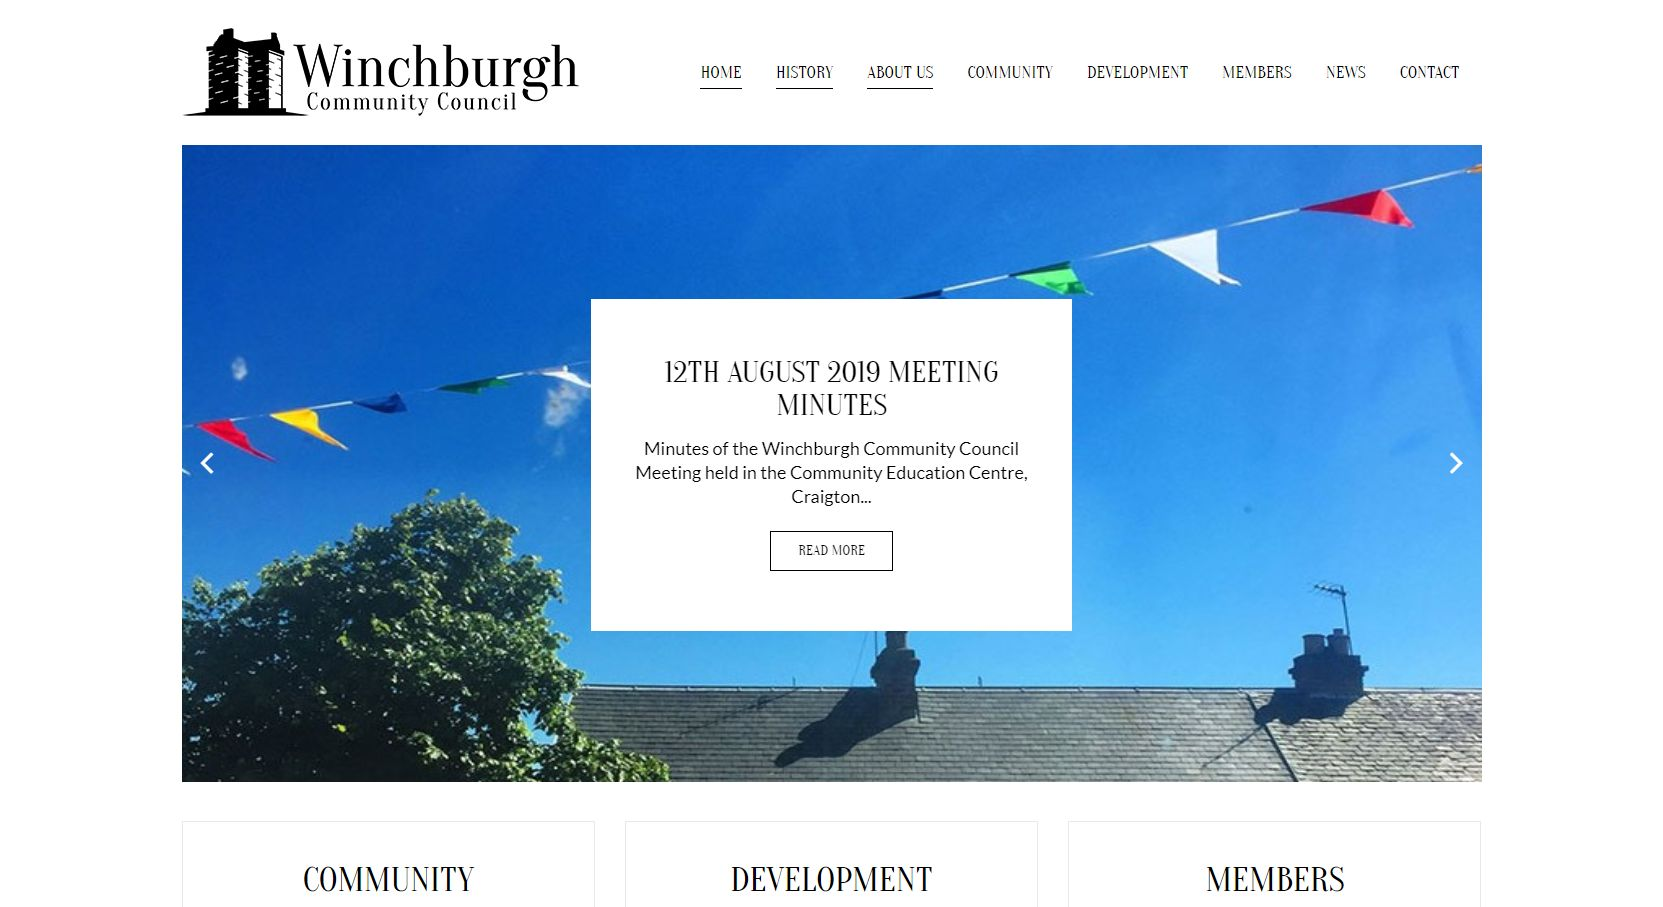 Winchburgh Community Council Header